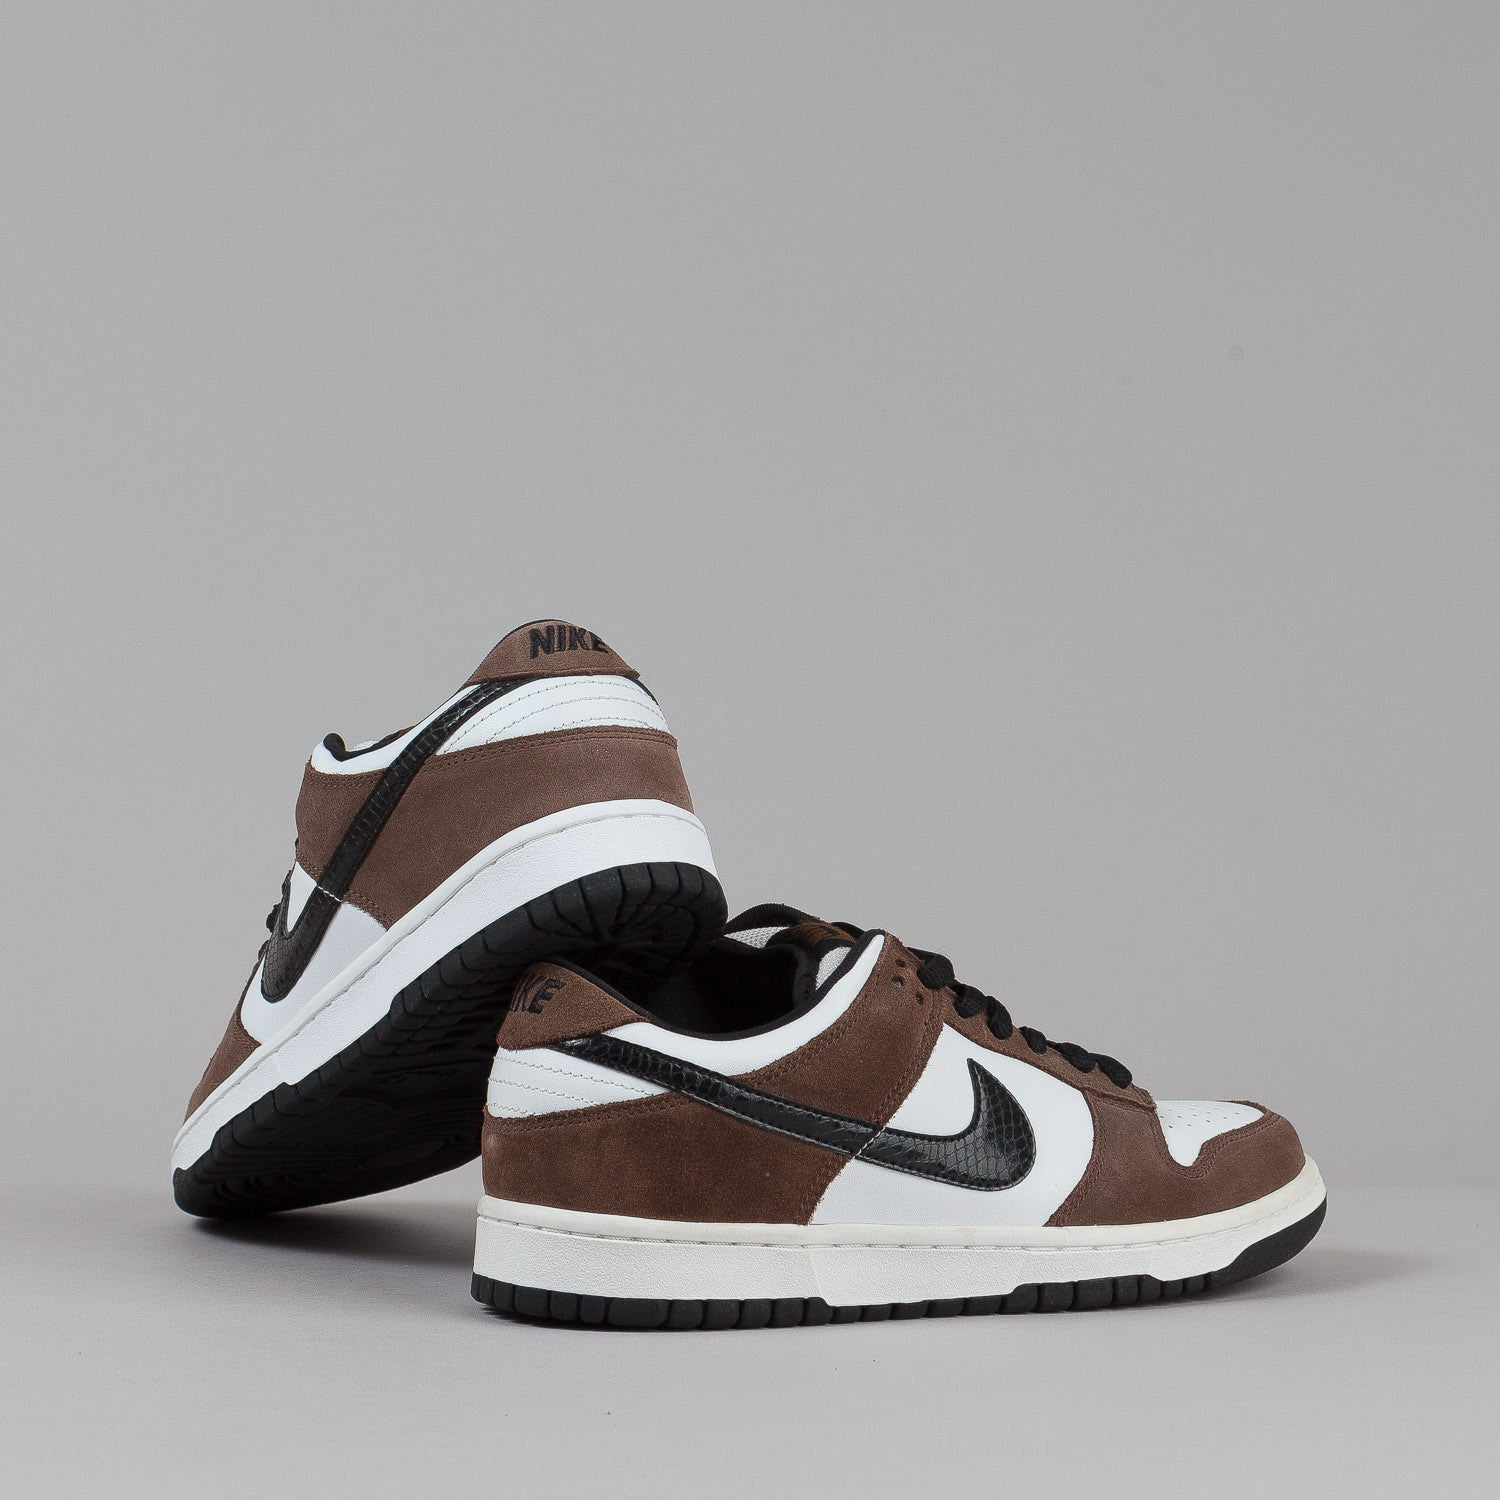 Nike SB Dunk Low Pro Shoes - White / Black / Trail End Brown